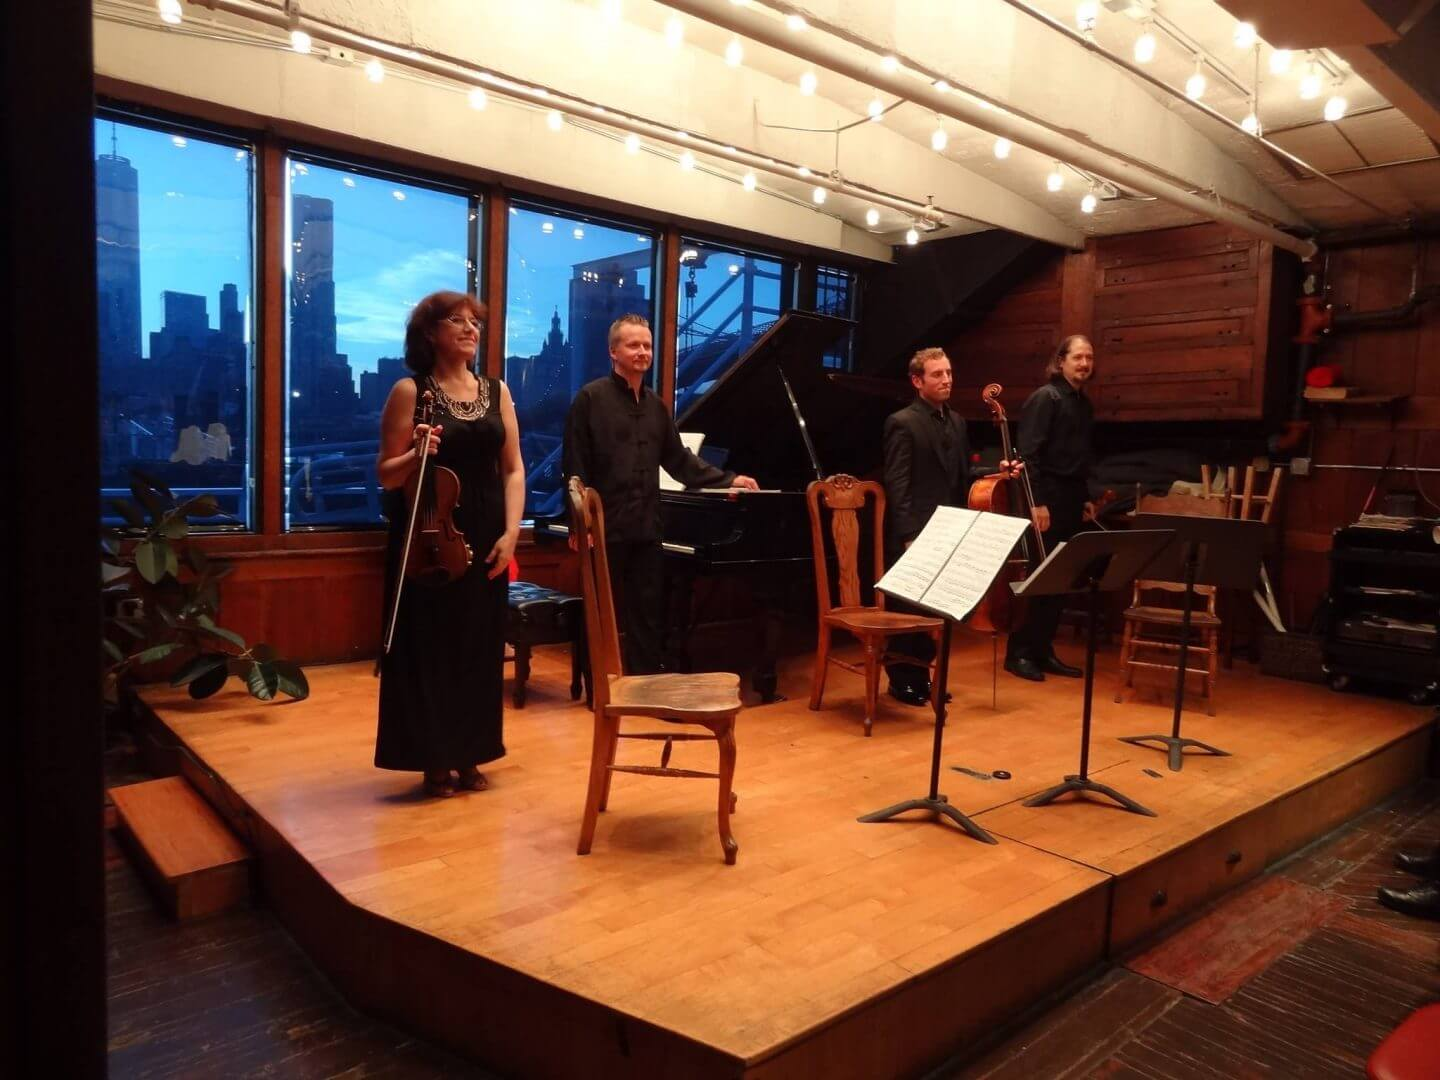 Barge Music night concert with St Petersburg Piano Quartet March Thomas Mesa